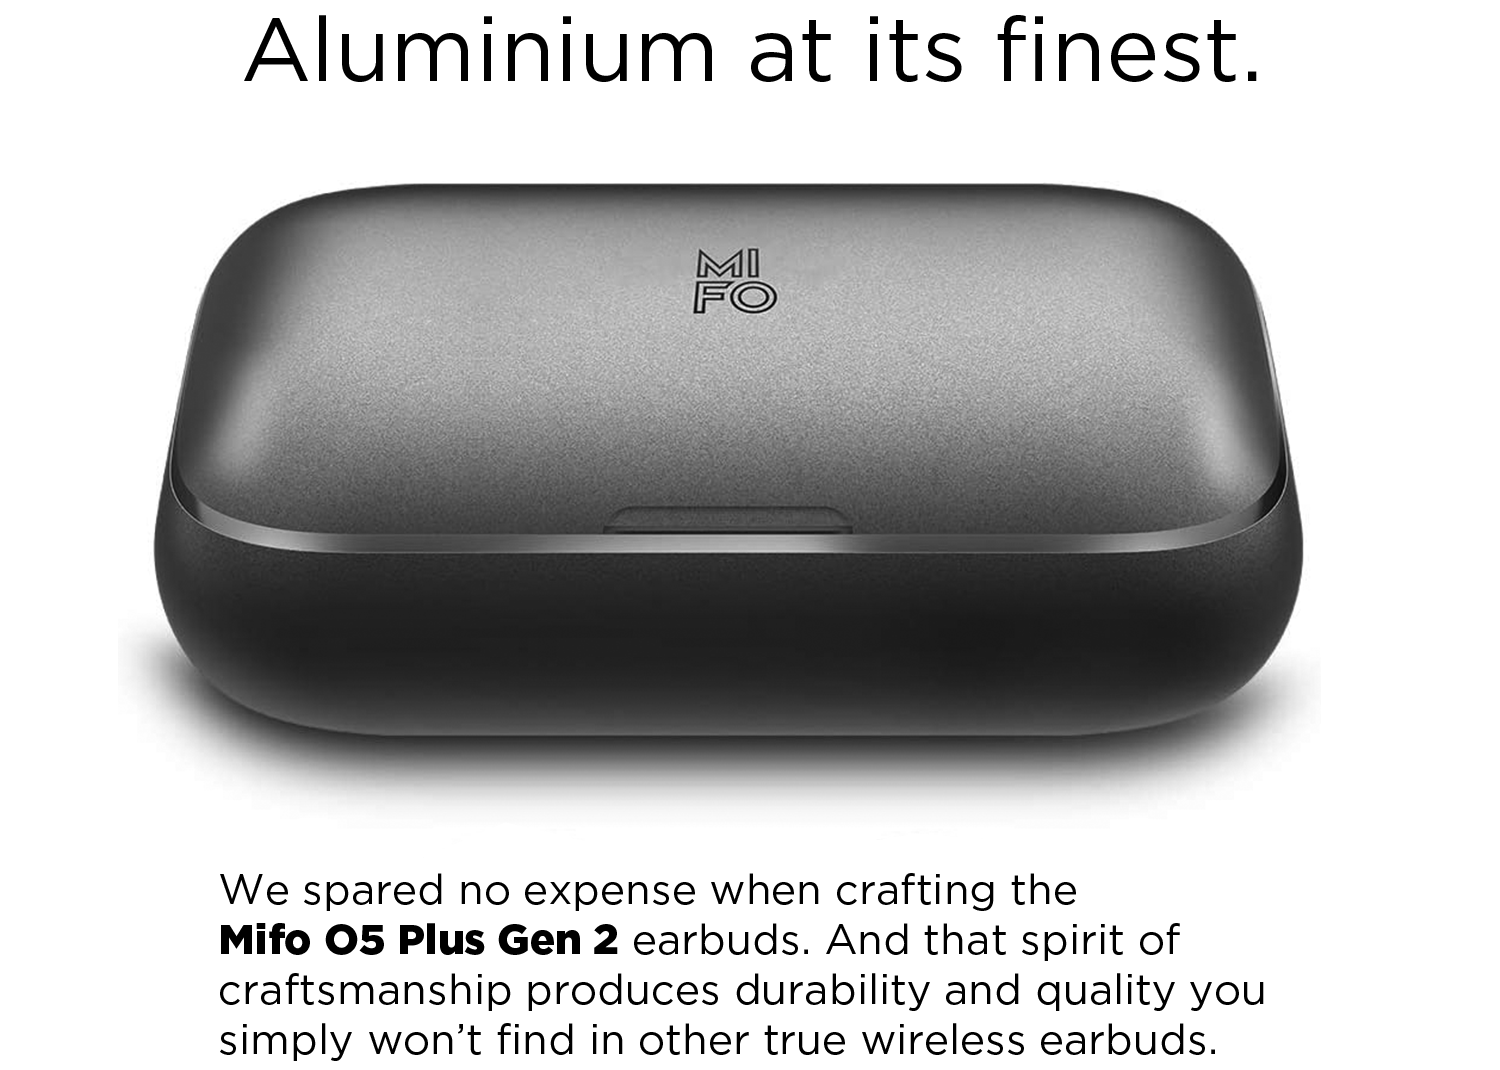 Mifo O5 Plus Gen 2 UK